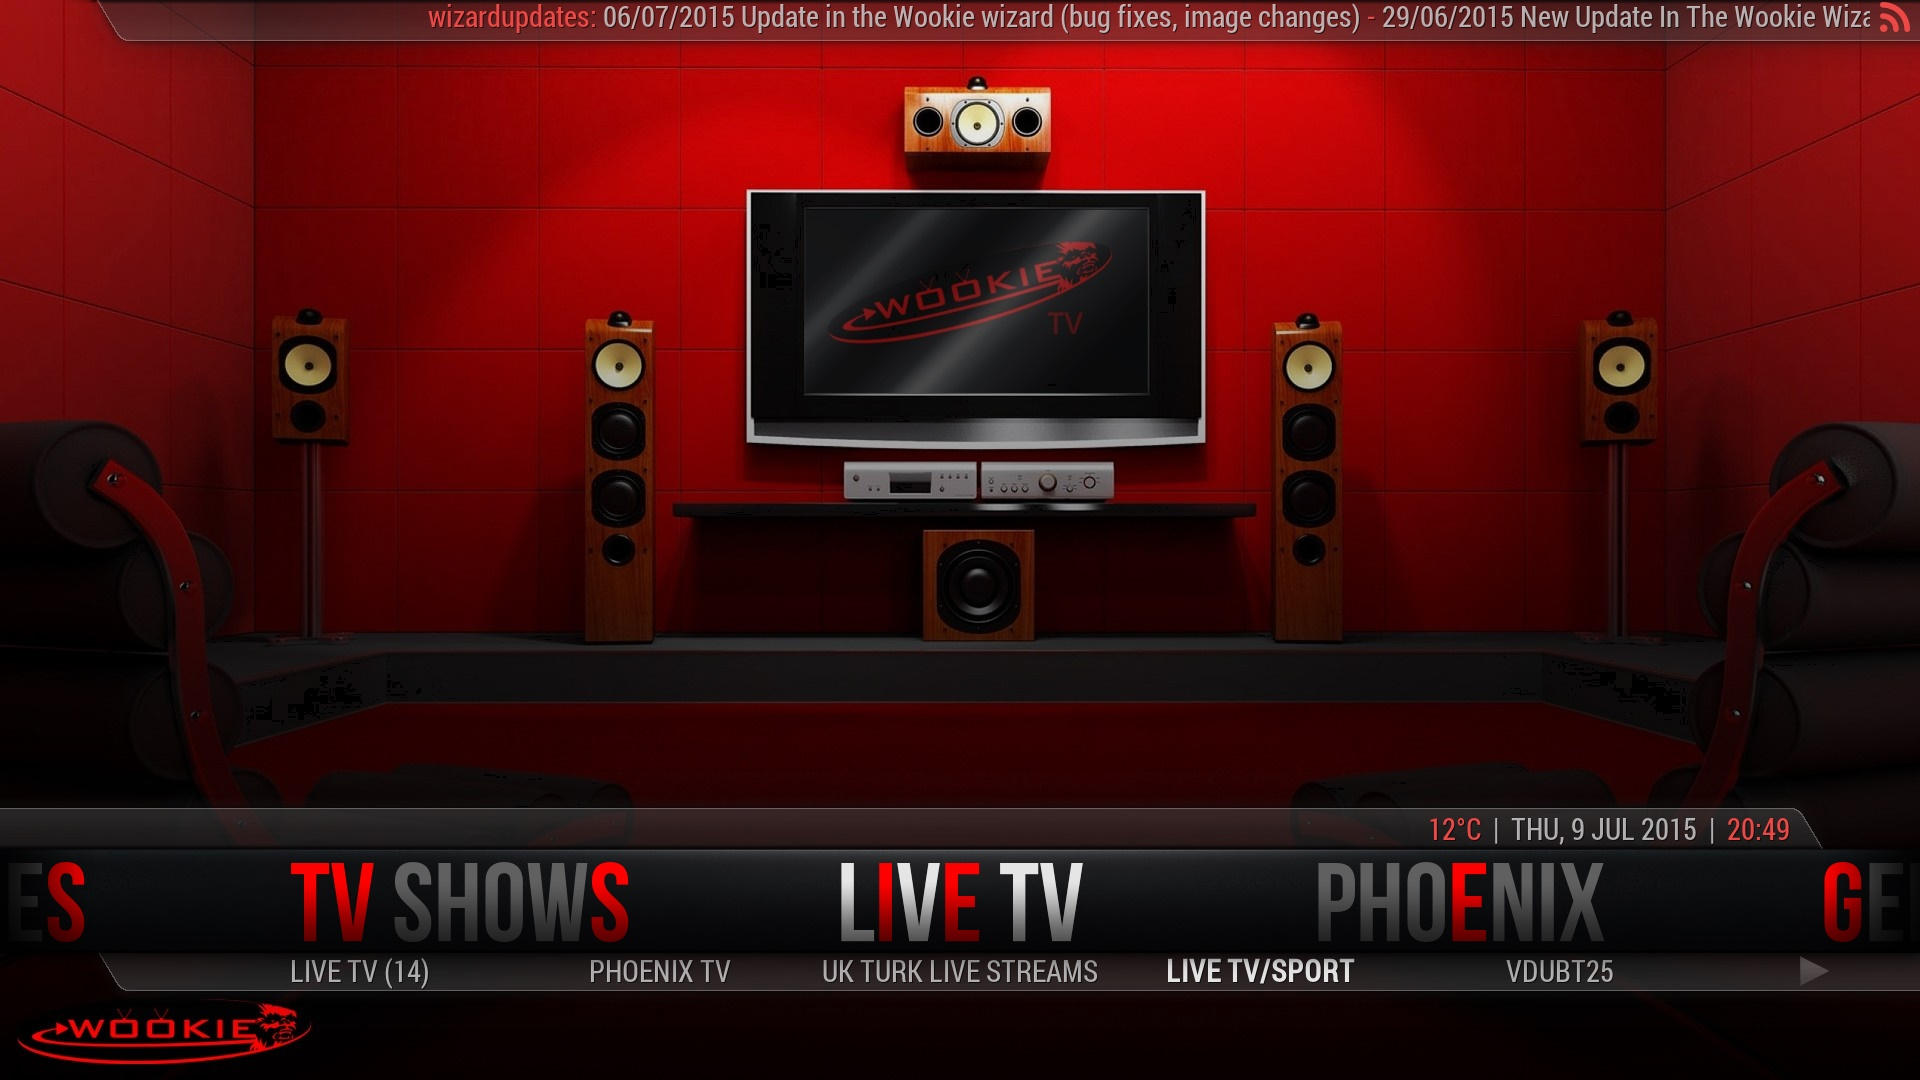 S Name 3d Wallpaper Android Tv Box Tumshie Org